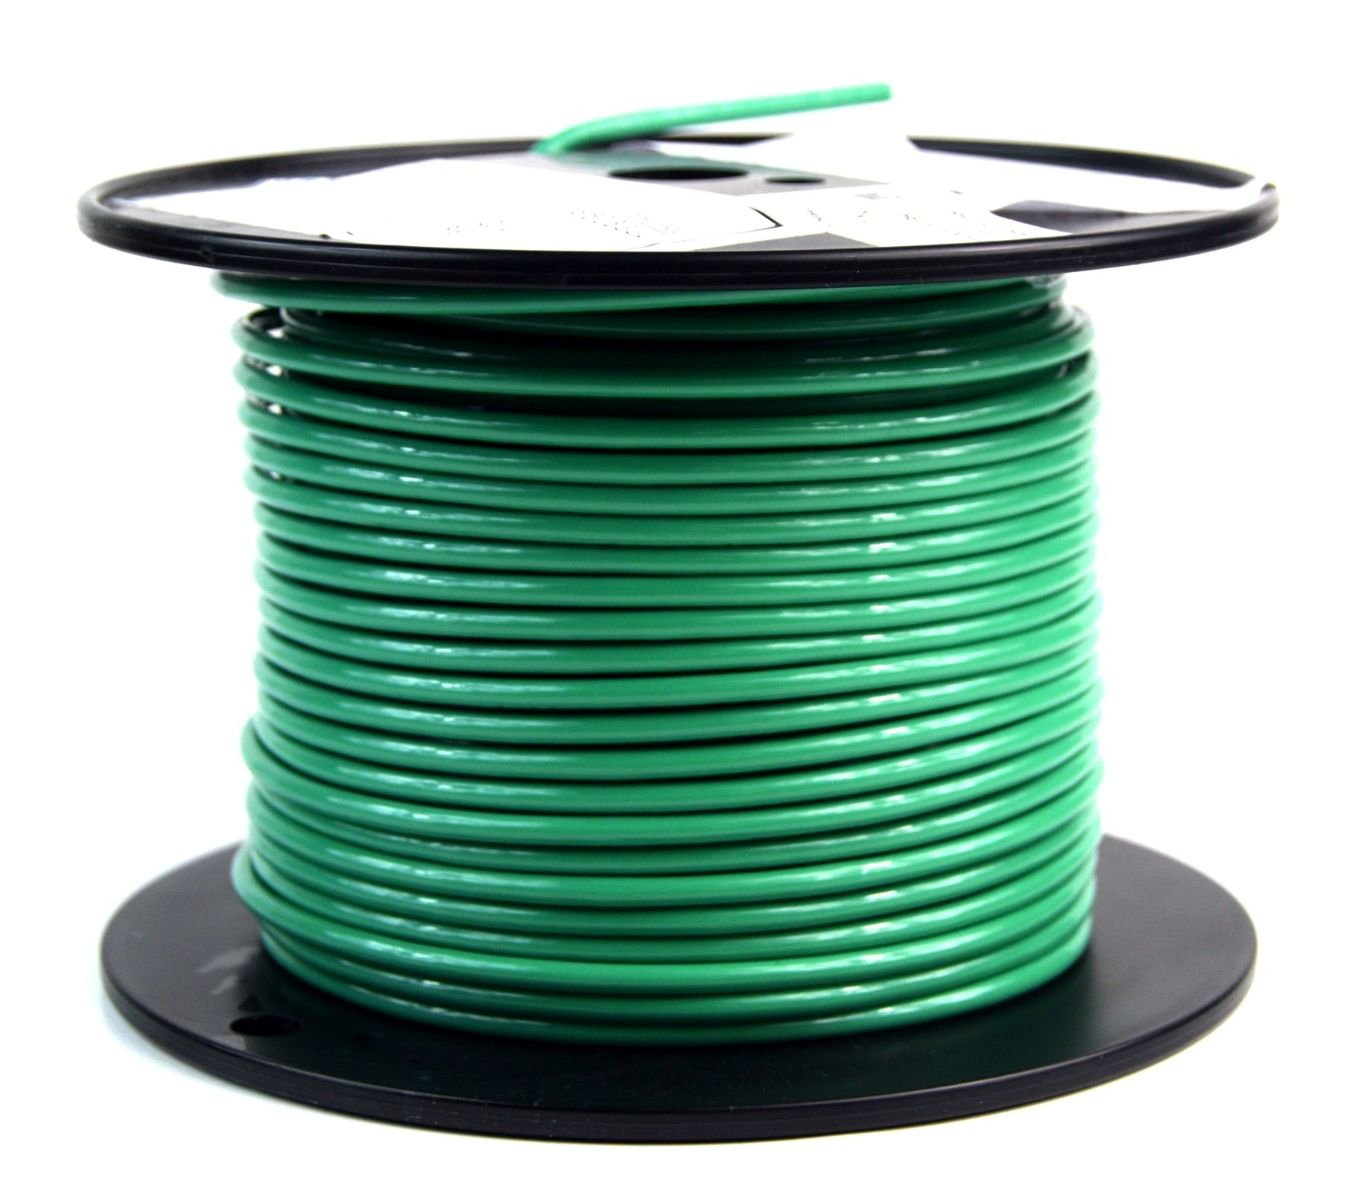 Cheap Ac Ground Wire, find Ac Ground Wire deals on line at Alibaba.com